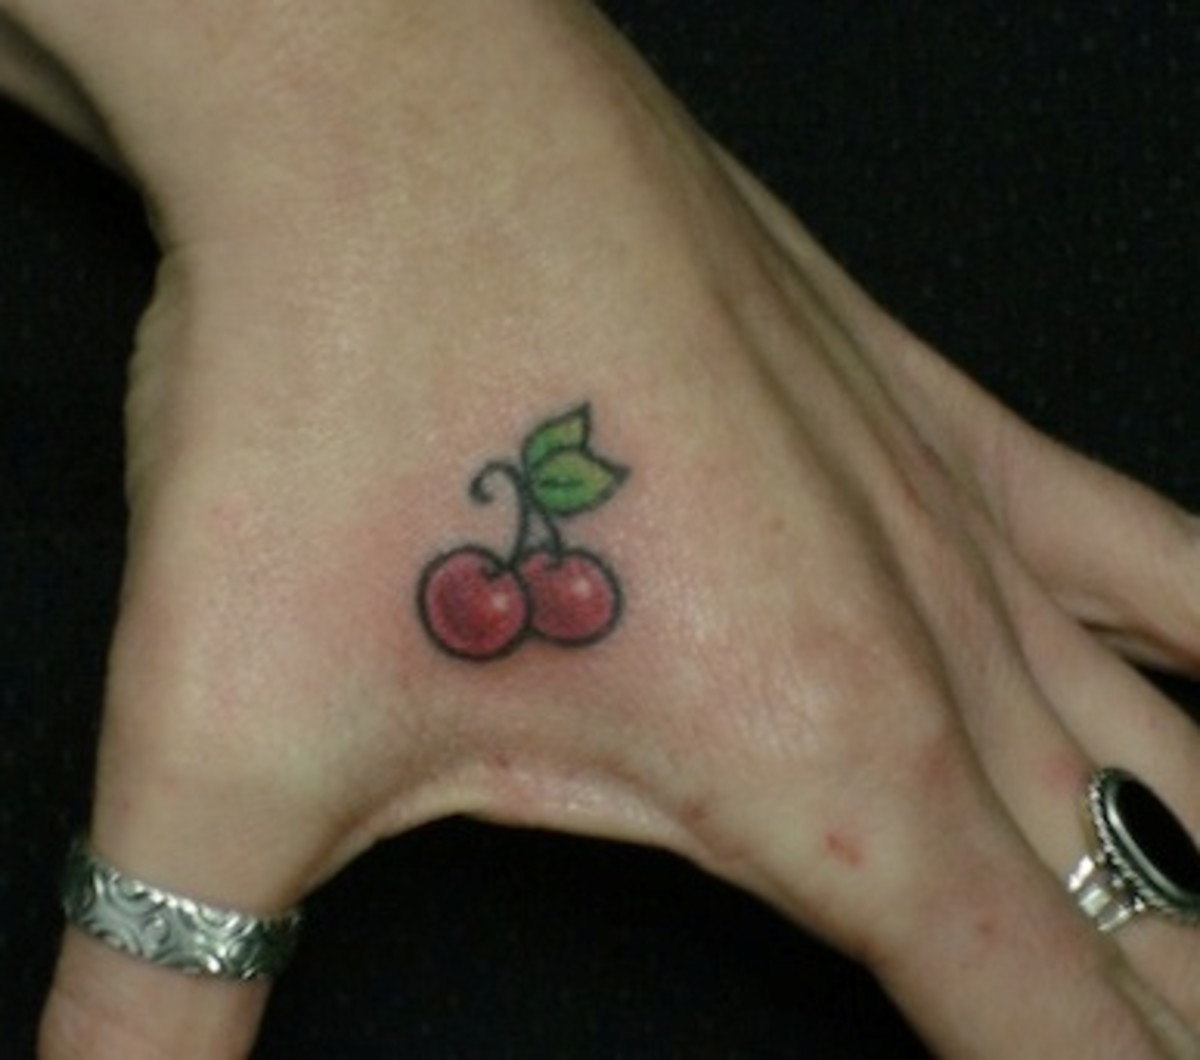 Is anything sweeter then a cherry? But will this look so cool when this person is 70?